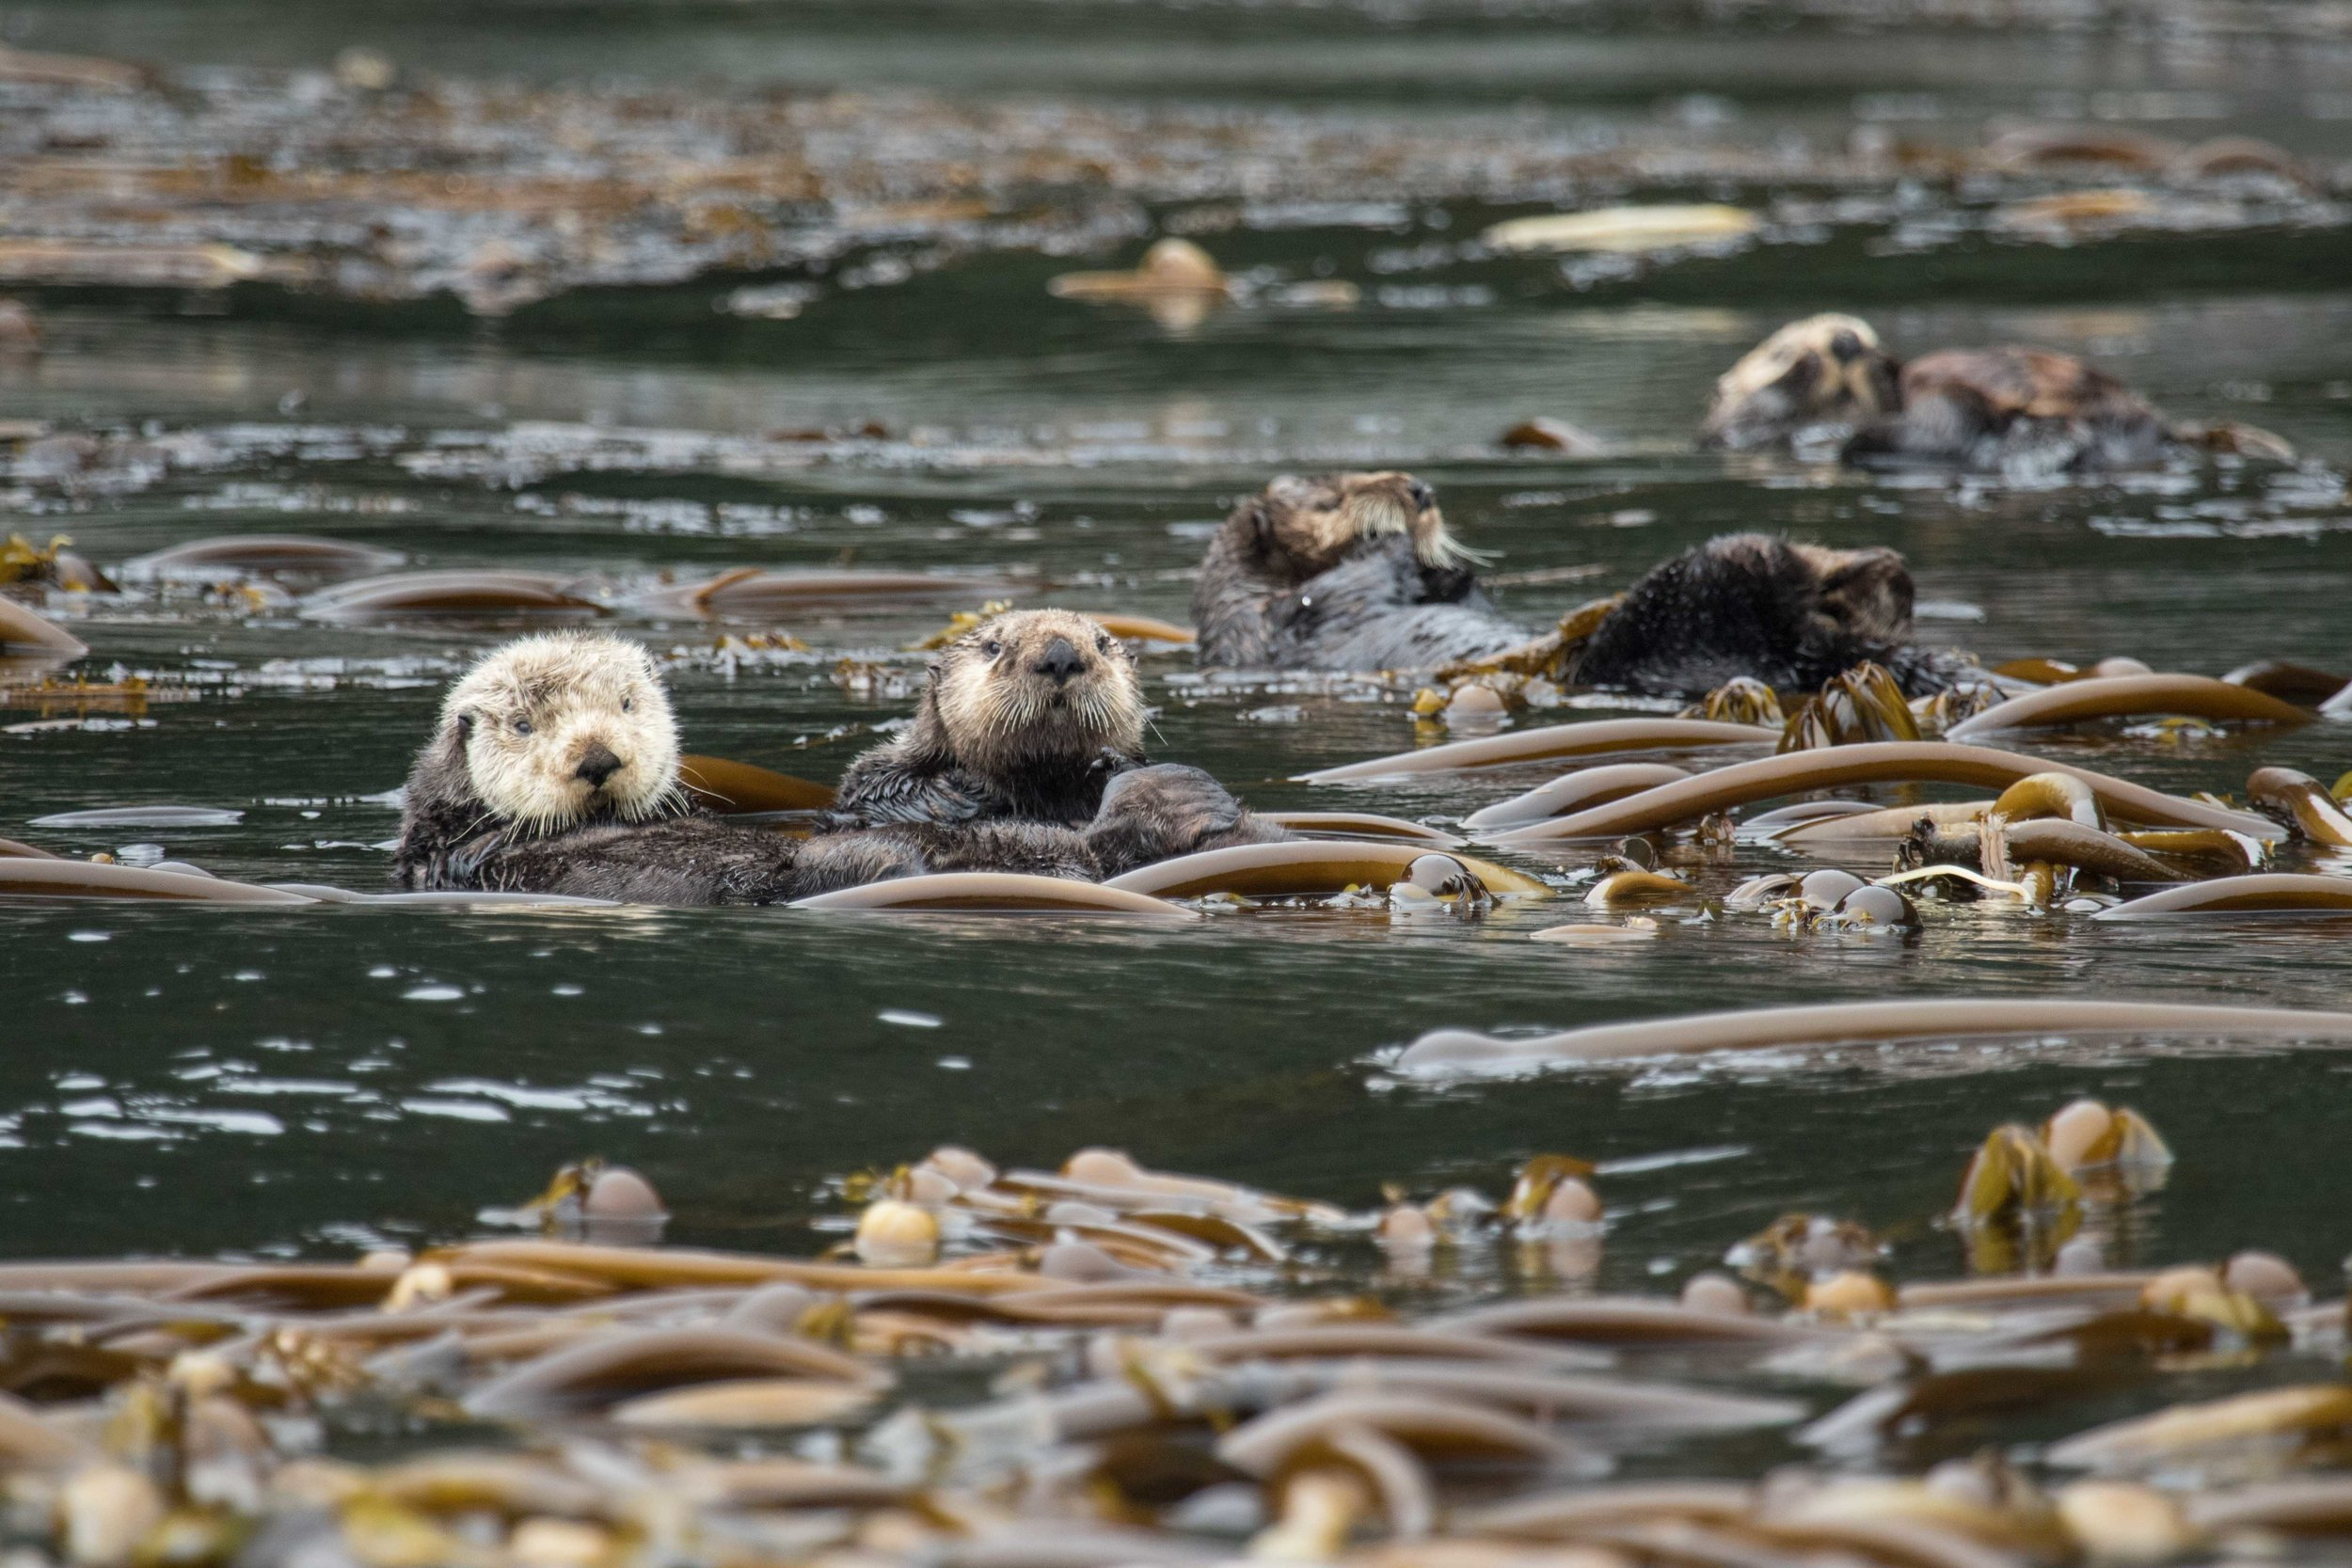 Otter haven